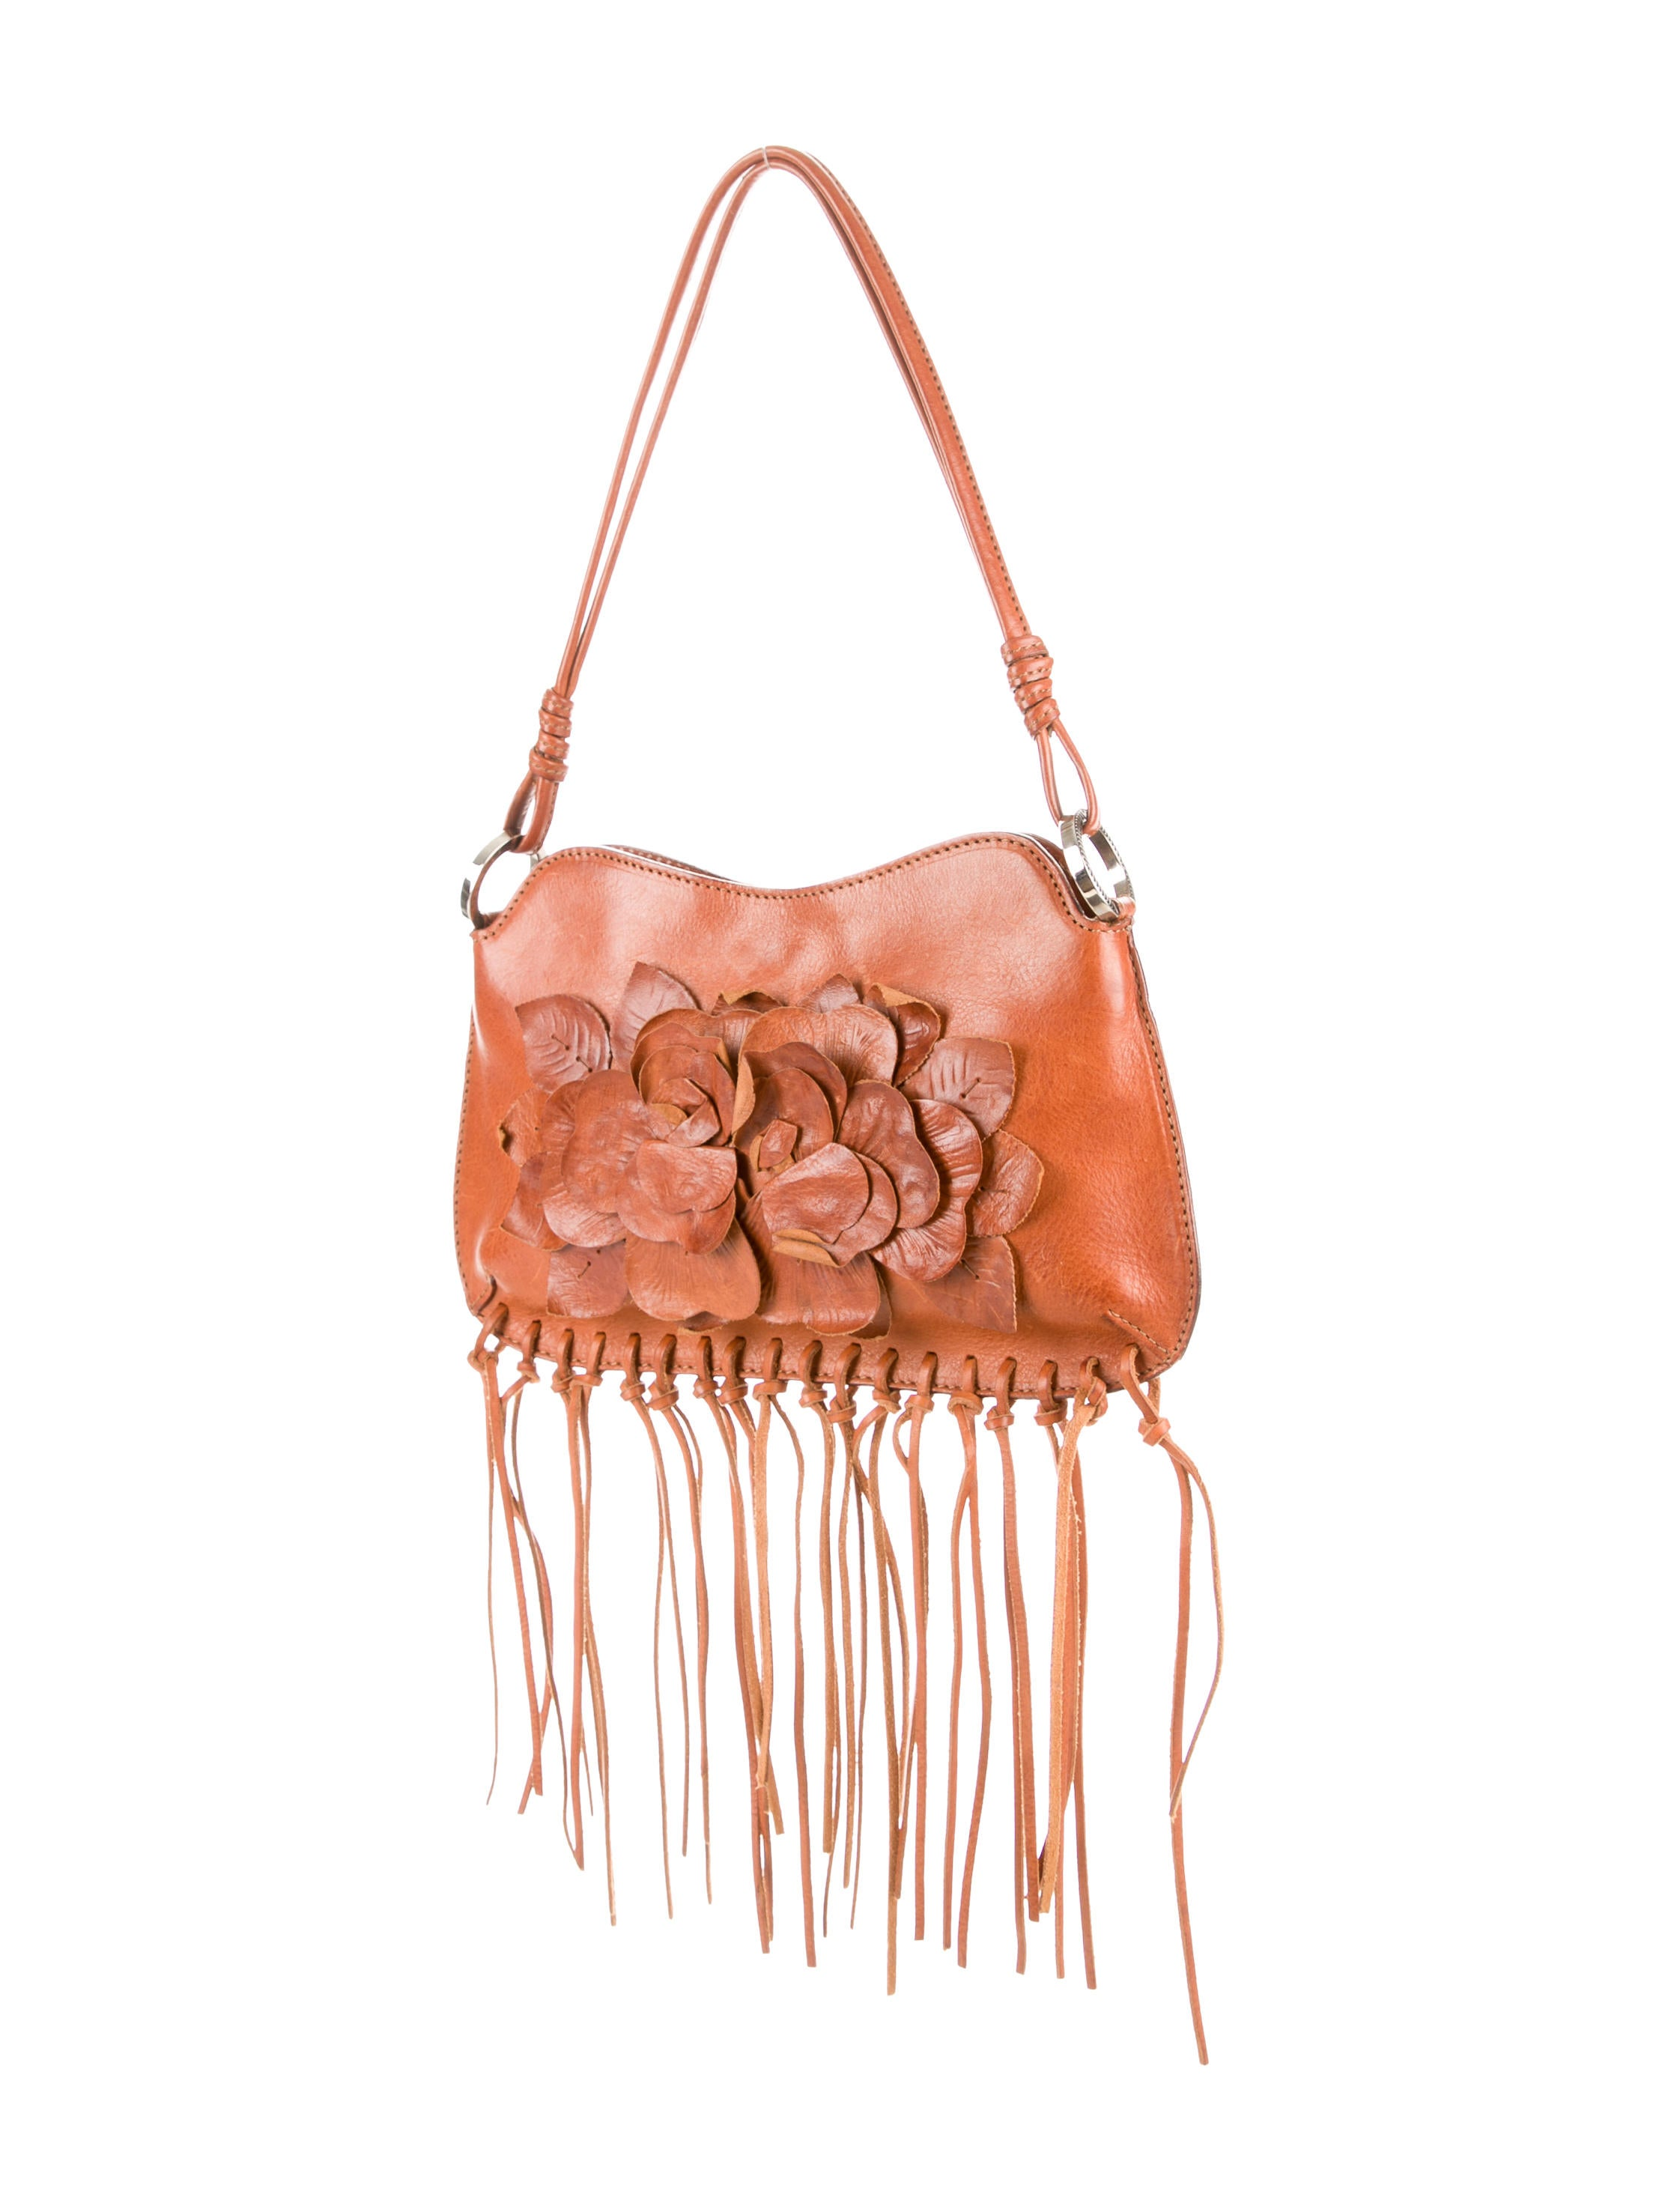 Valentino Floral Leather Appliquu00e9 Bag - Handbags - VAL49732 | The RealReal